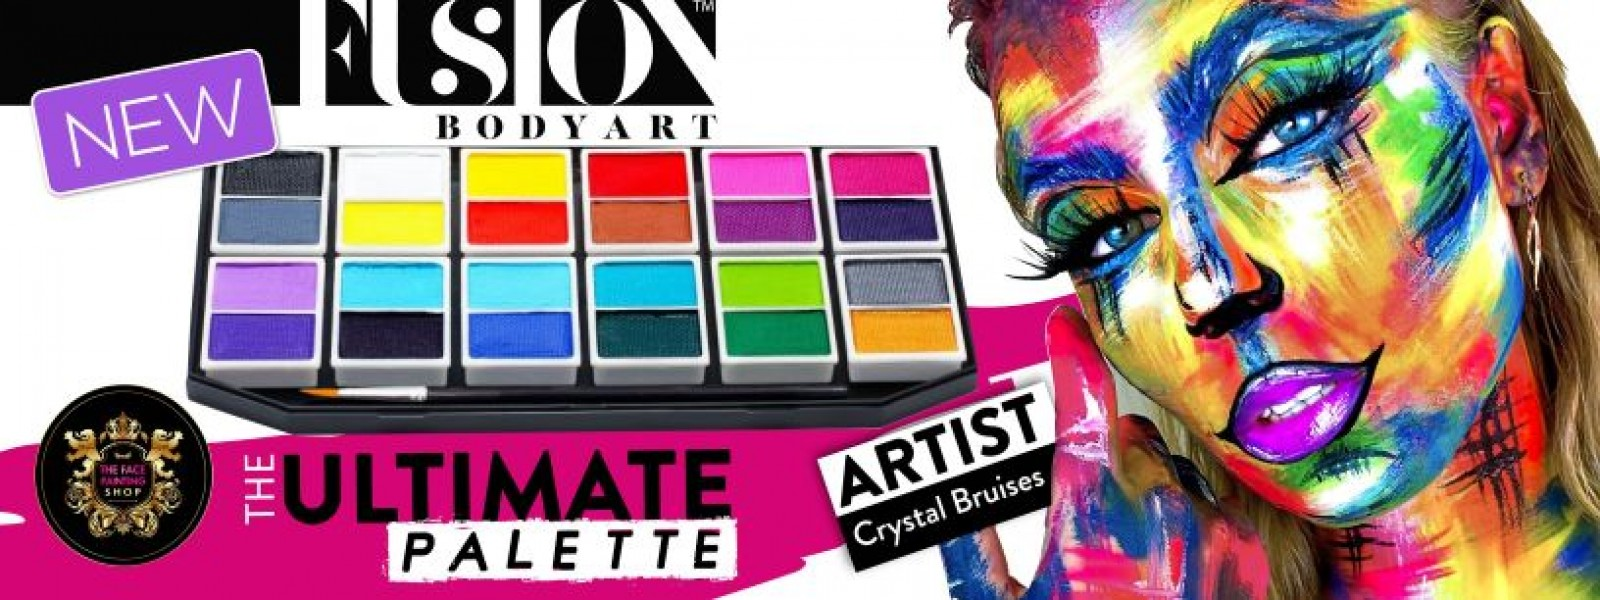 Fusion Body Art Palette